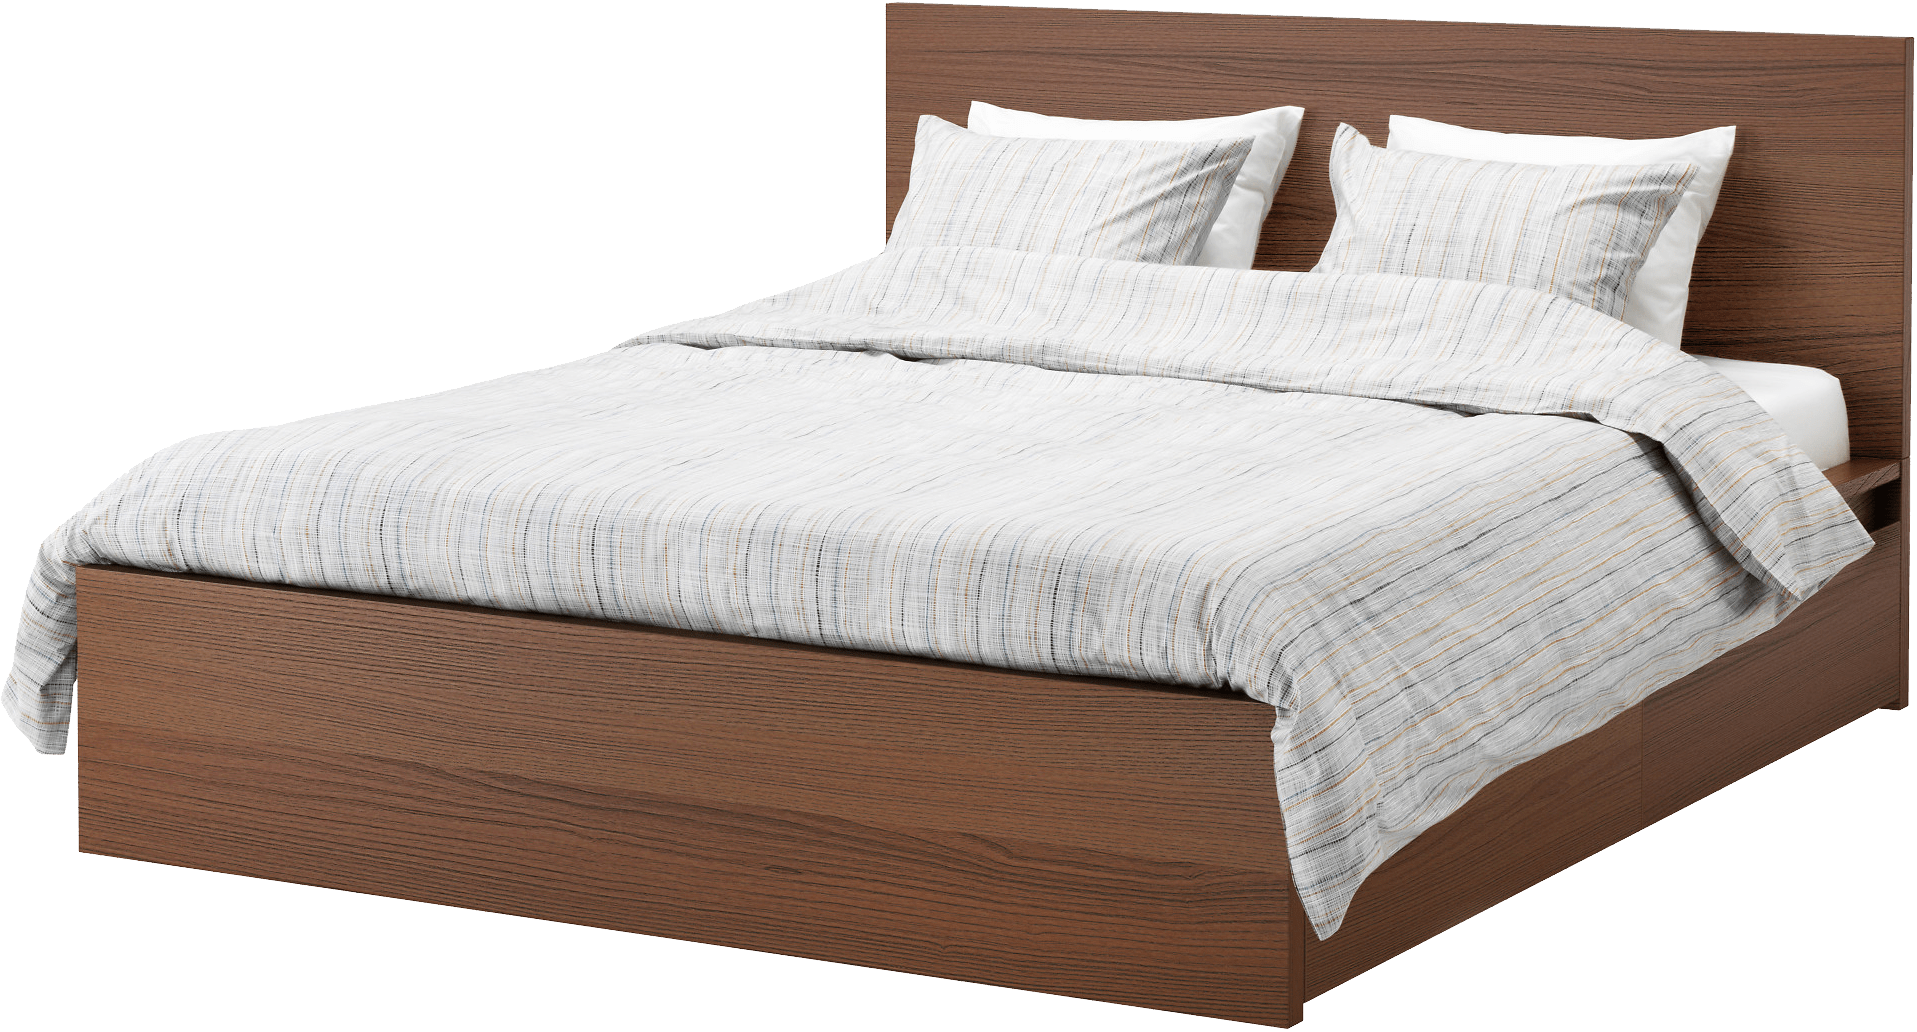 Furniture clipart wooden bed Bed Romantic Modern Bed transparent